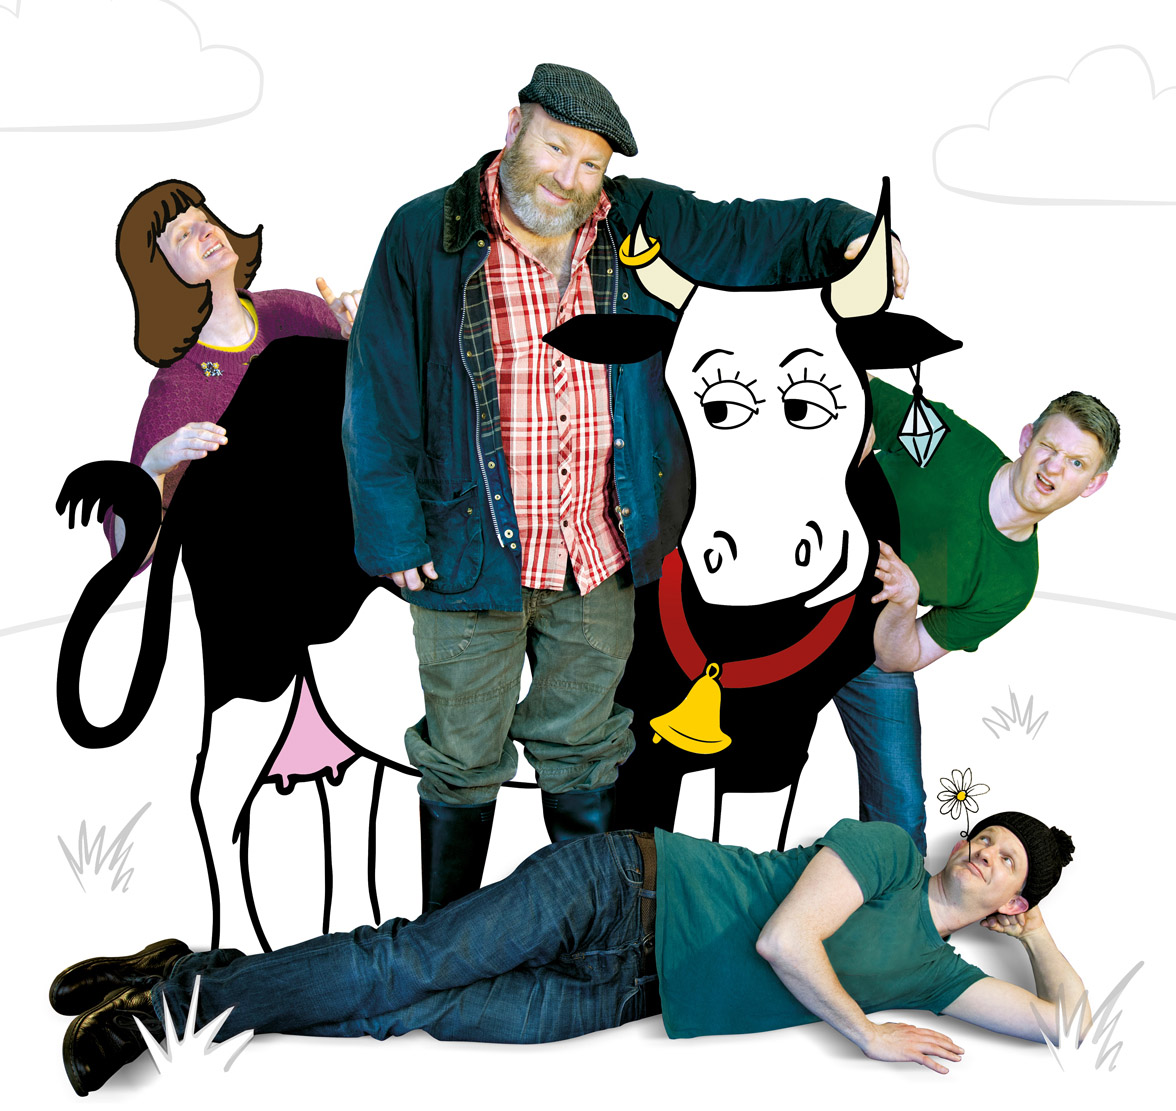 Living Spit: One Man & His Cow - A play, a pie and a pint!